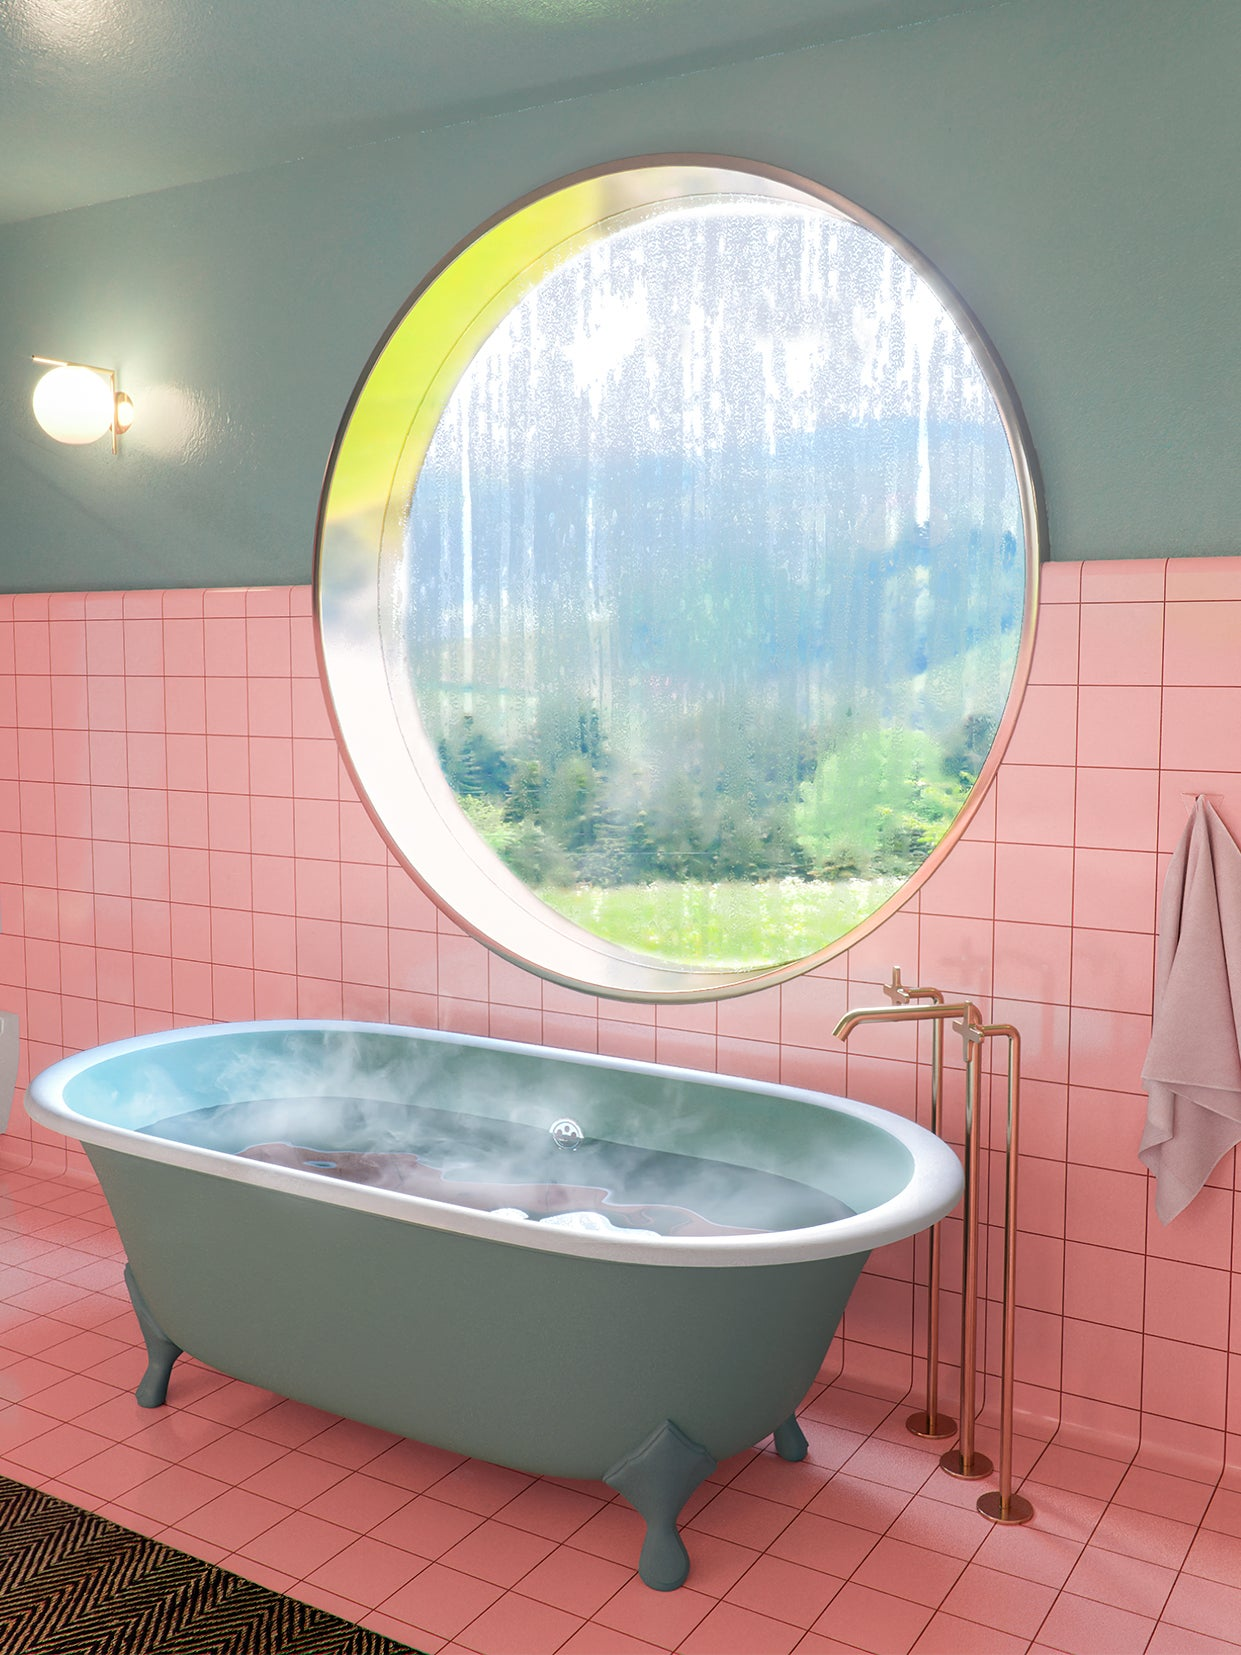 pink and green bathroom with a round window over the tub